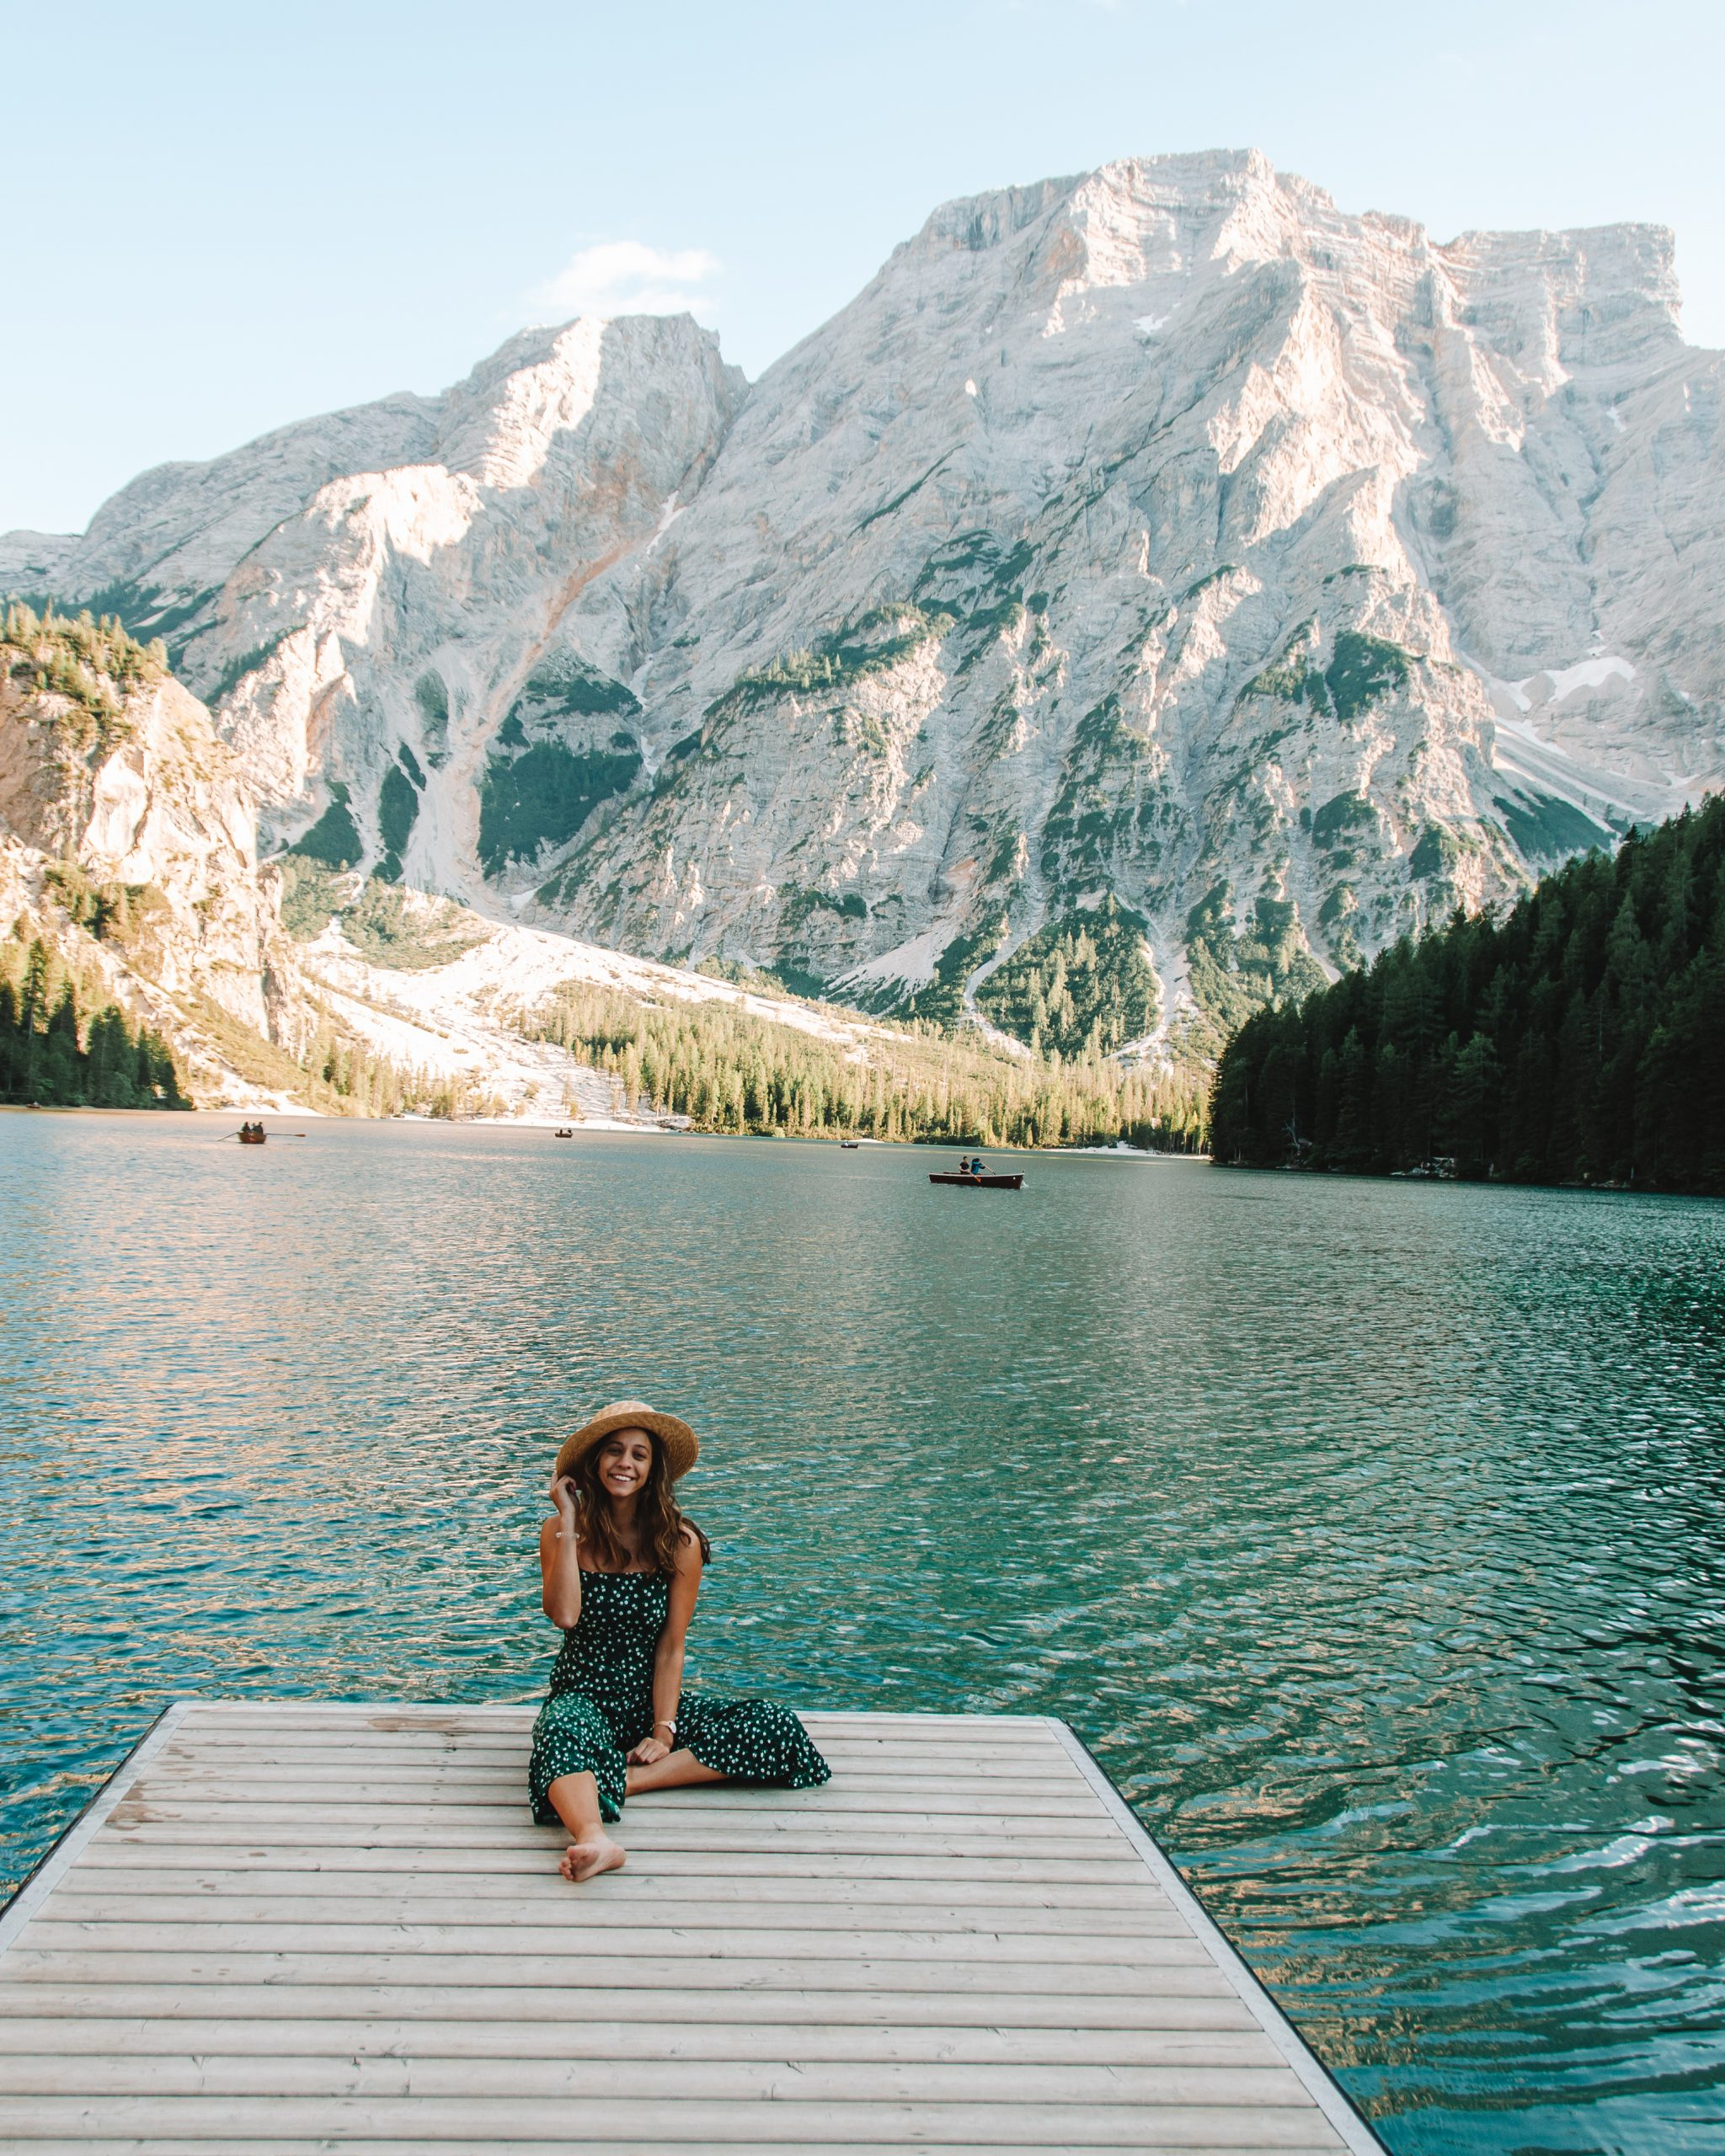 Girl at Lago di Braies, Italy